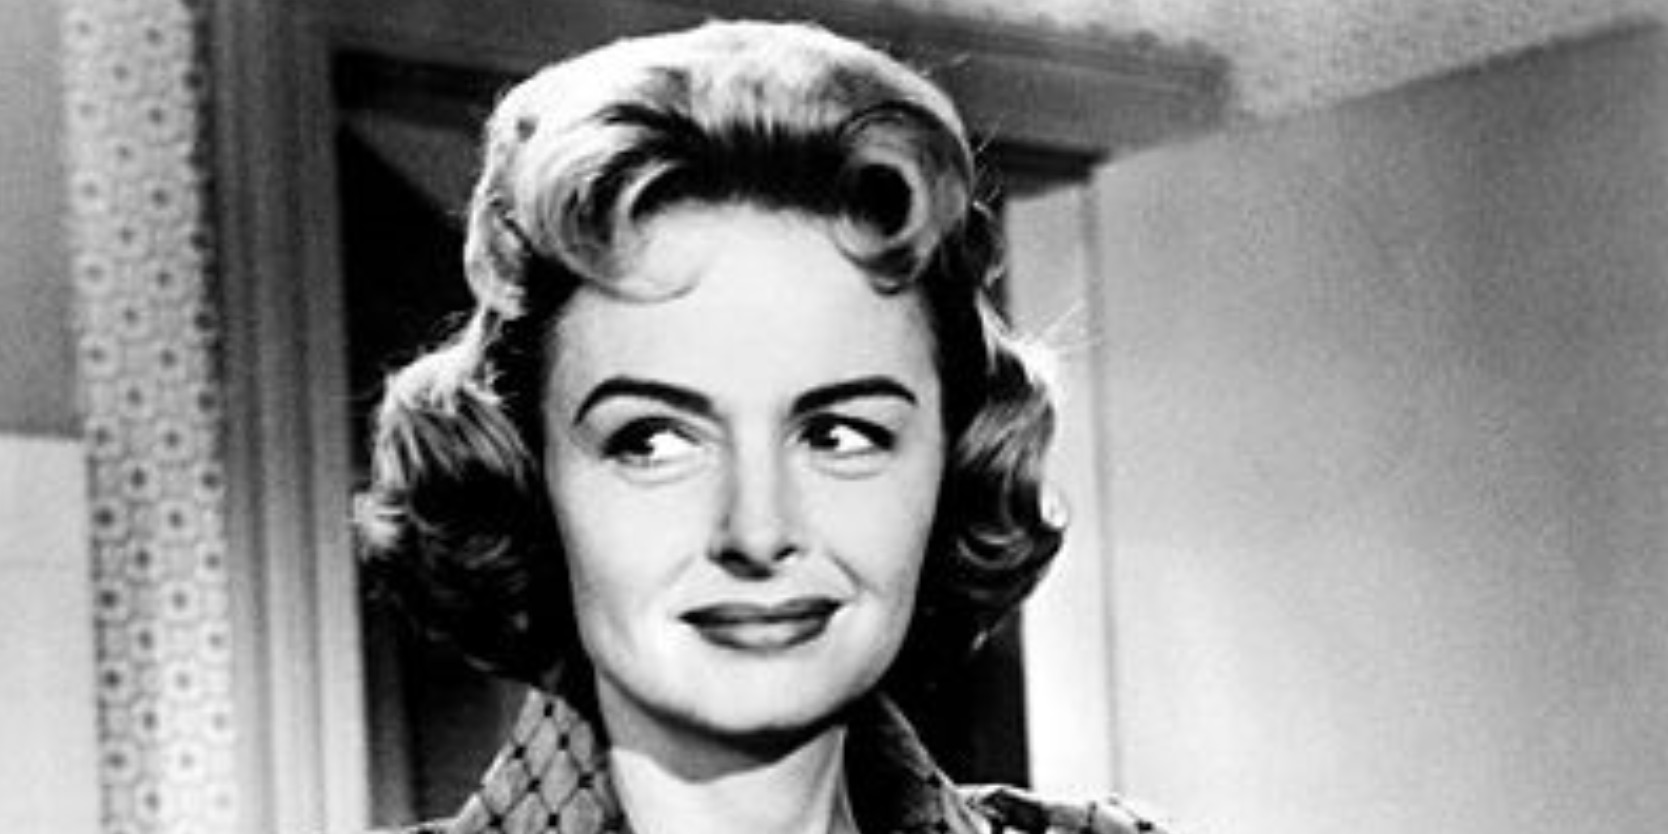 50s female icons, movies, donna reed, The Donna Reed Show